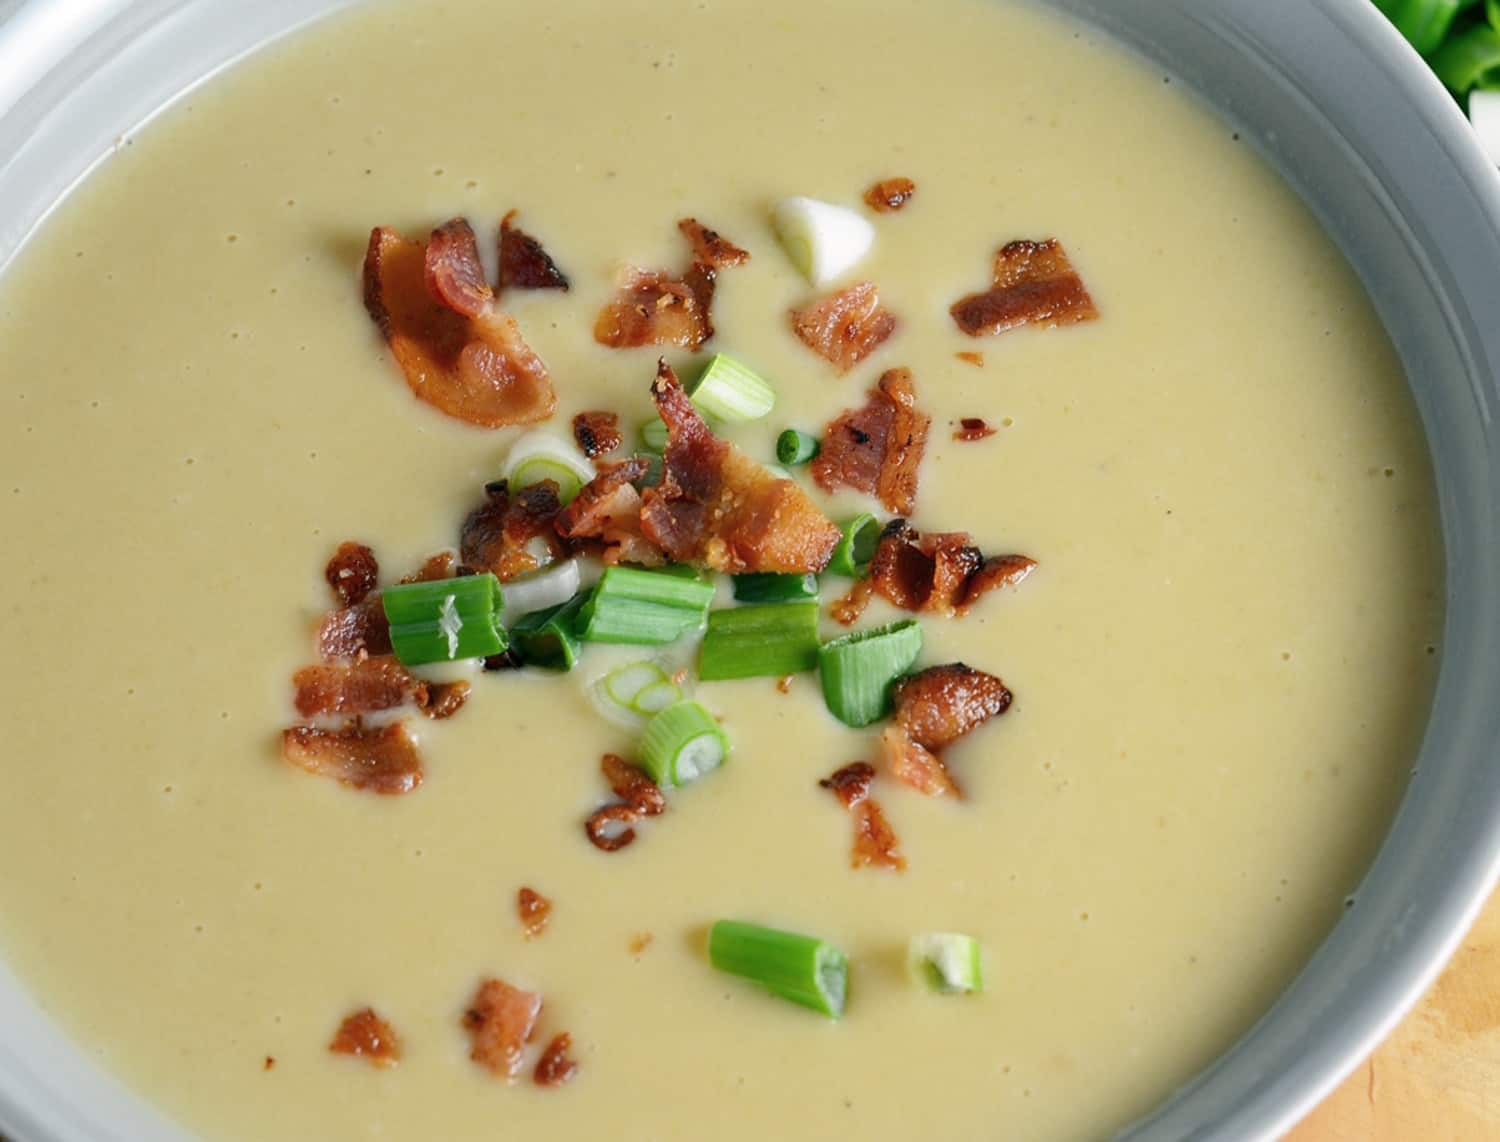 Creamy Leek and Potato Soup Recipe- great make ahead soup recipe that warms the soul. French leek and potato soup topped with sliced scallions, crumbled bacon and Maldon sea salt. #potatosoup #creamysoups www.savoryexperiments.com